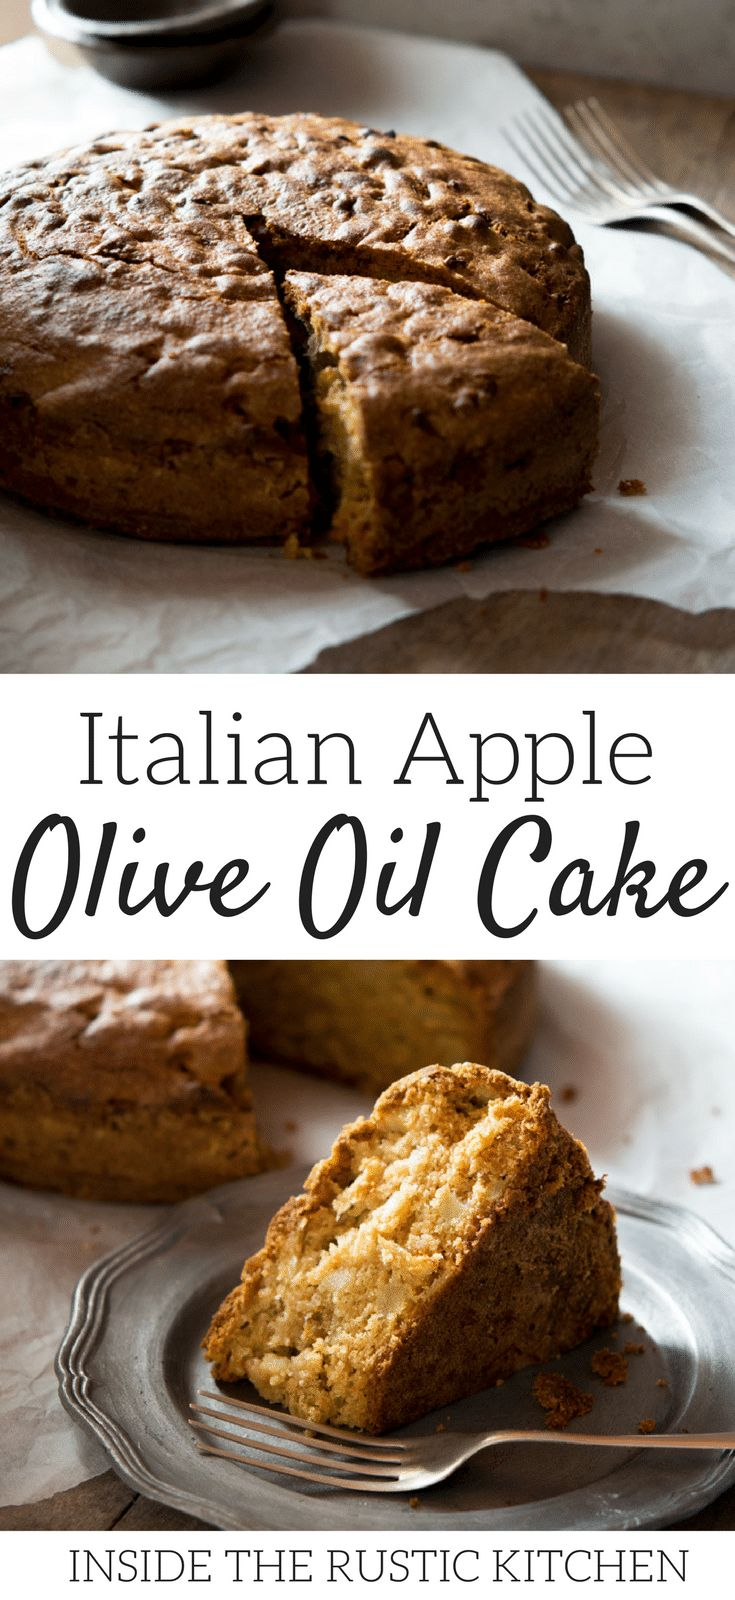 A rustic Italian apple olive oil cake recipe made with cinnamon and sultanas it's absolutely perfect for breakfast or dessert with a hot cup of coffee. Find the recipe for this authentic Italian apple olive oil cake and more traditional Italian recipes at Inside The Rustic Kitchen.